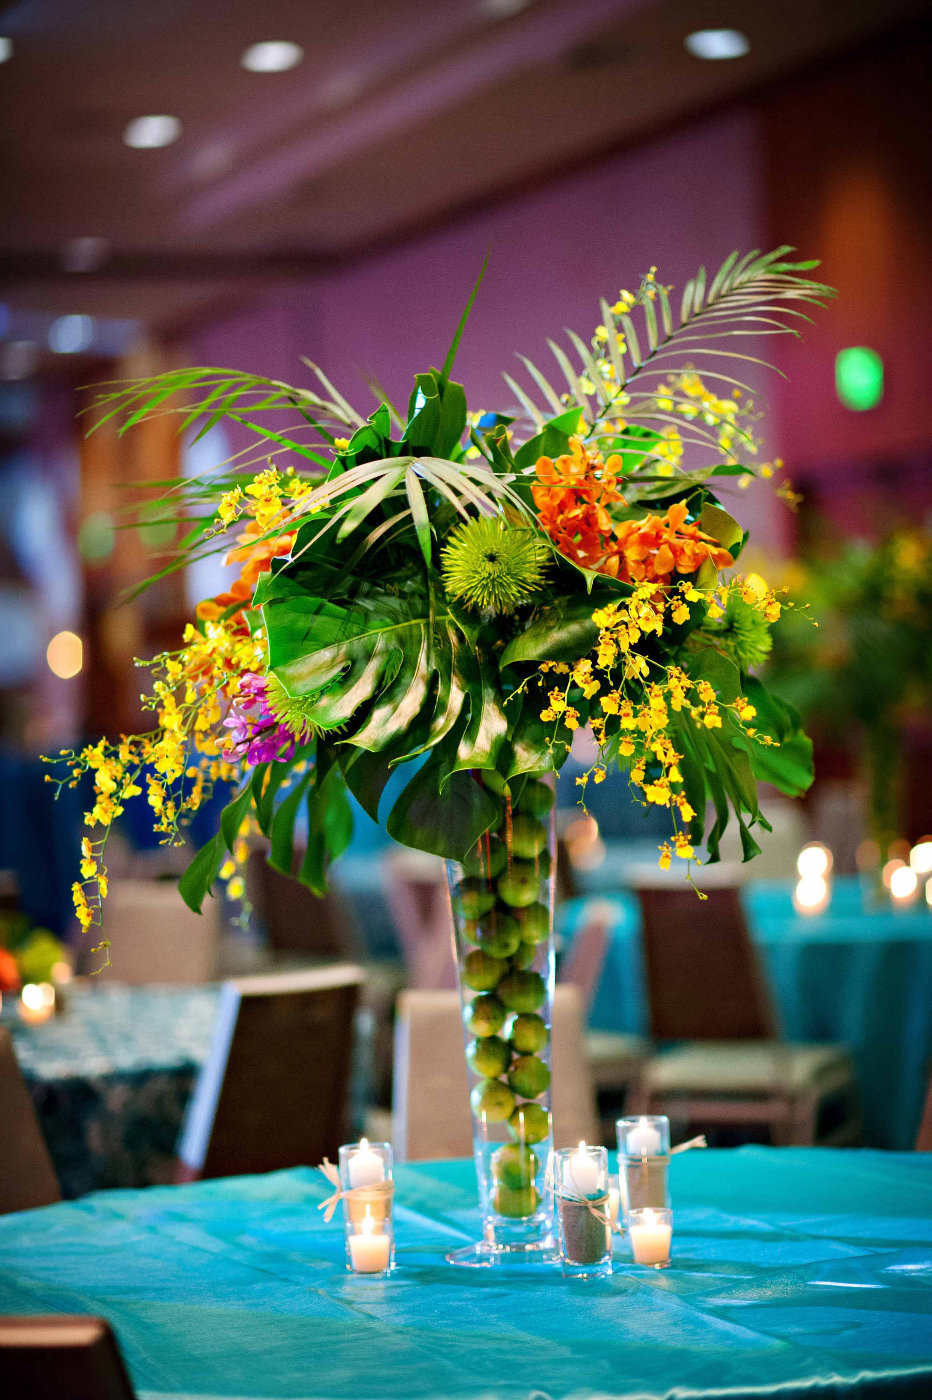 tropical centerpiece with limes, monstera leaves, yellow orchids, ferns, on turquoise linens